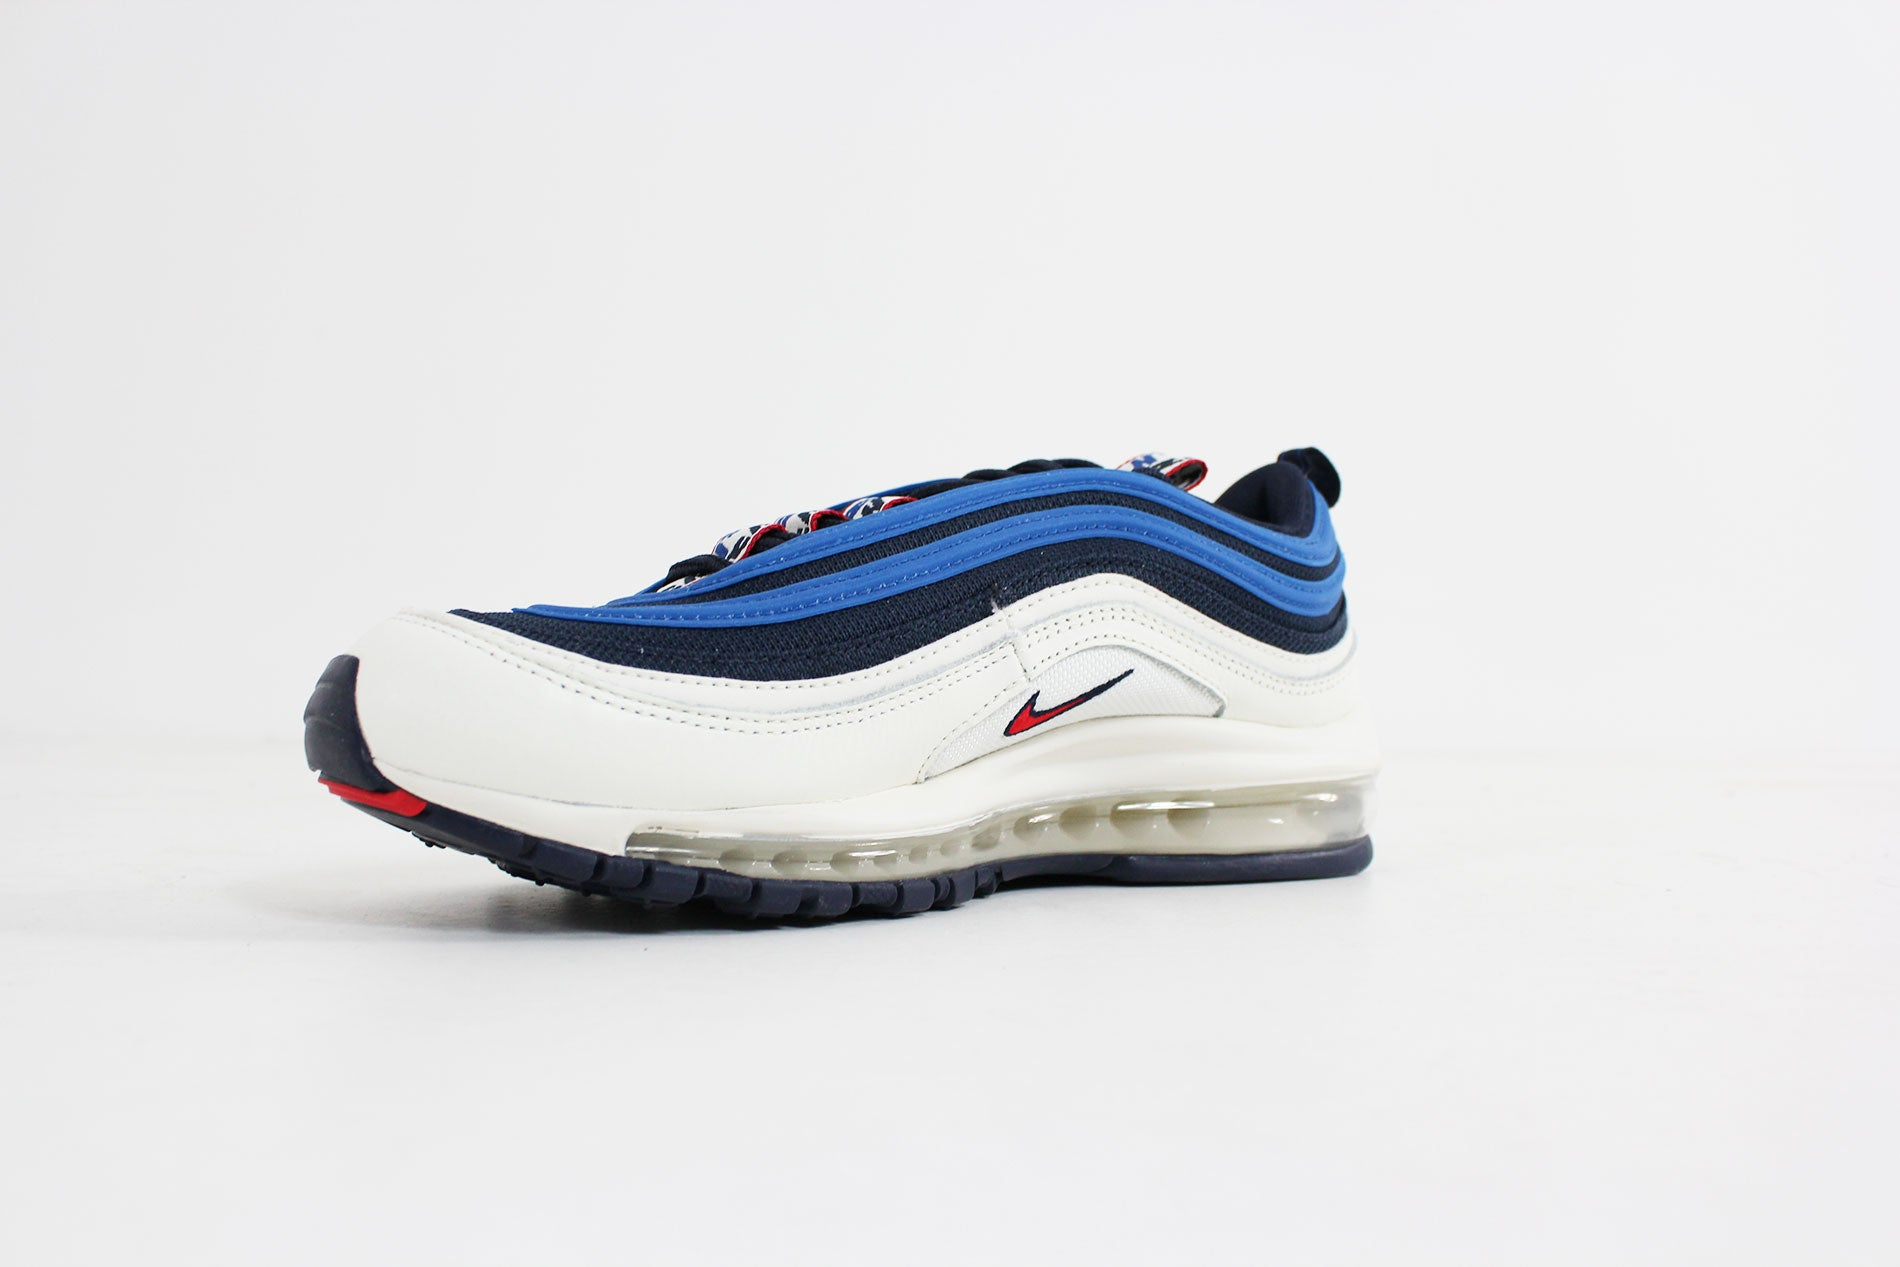 161d866e8c Nike - Air Max 97 SE (Obsidian/ University Red-Sail Blue Nebula) AQ4126-400